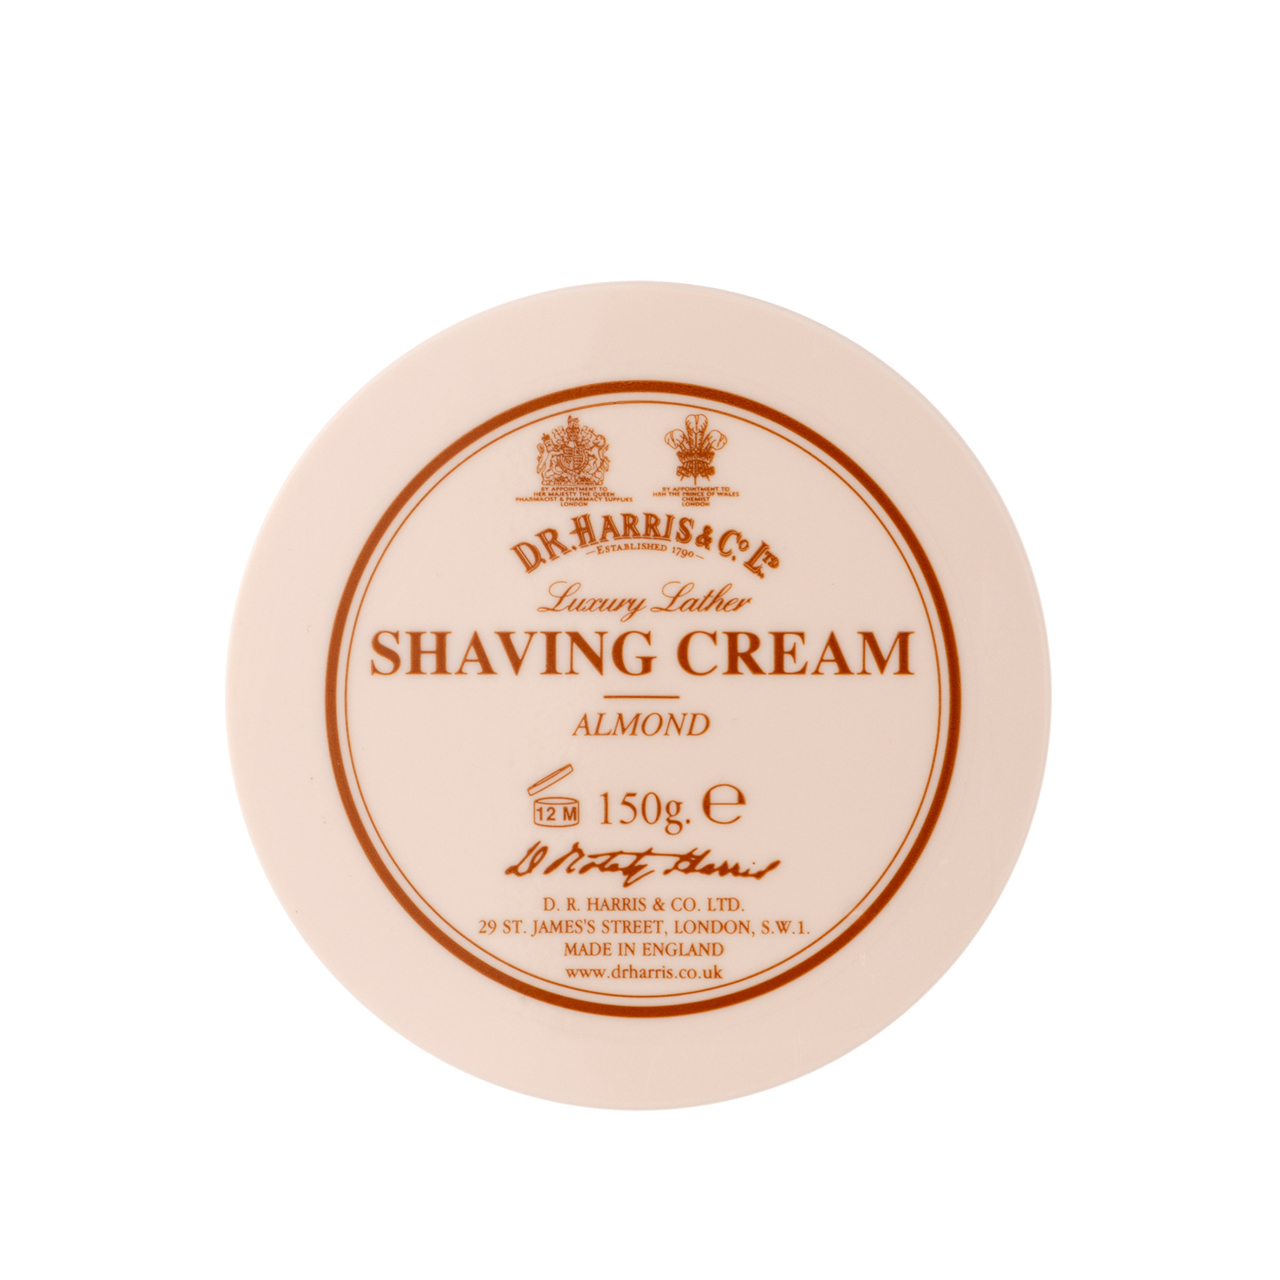 Almond - Shaving Cream Bowl